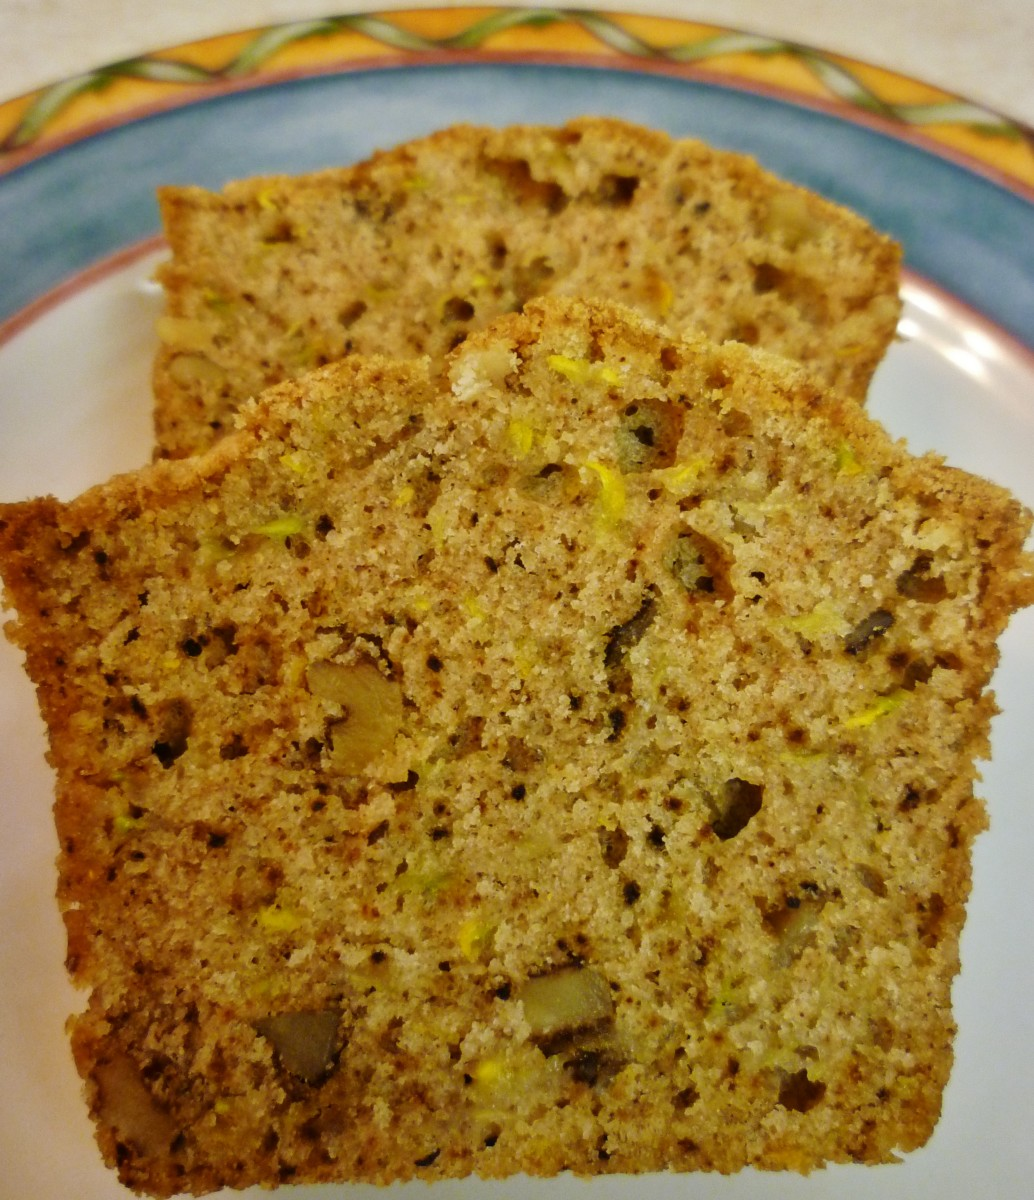 Yellow Squash & Walnut Bread